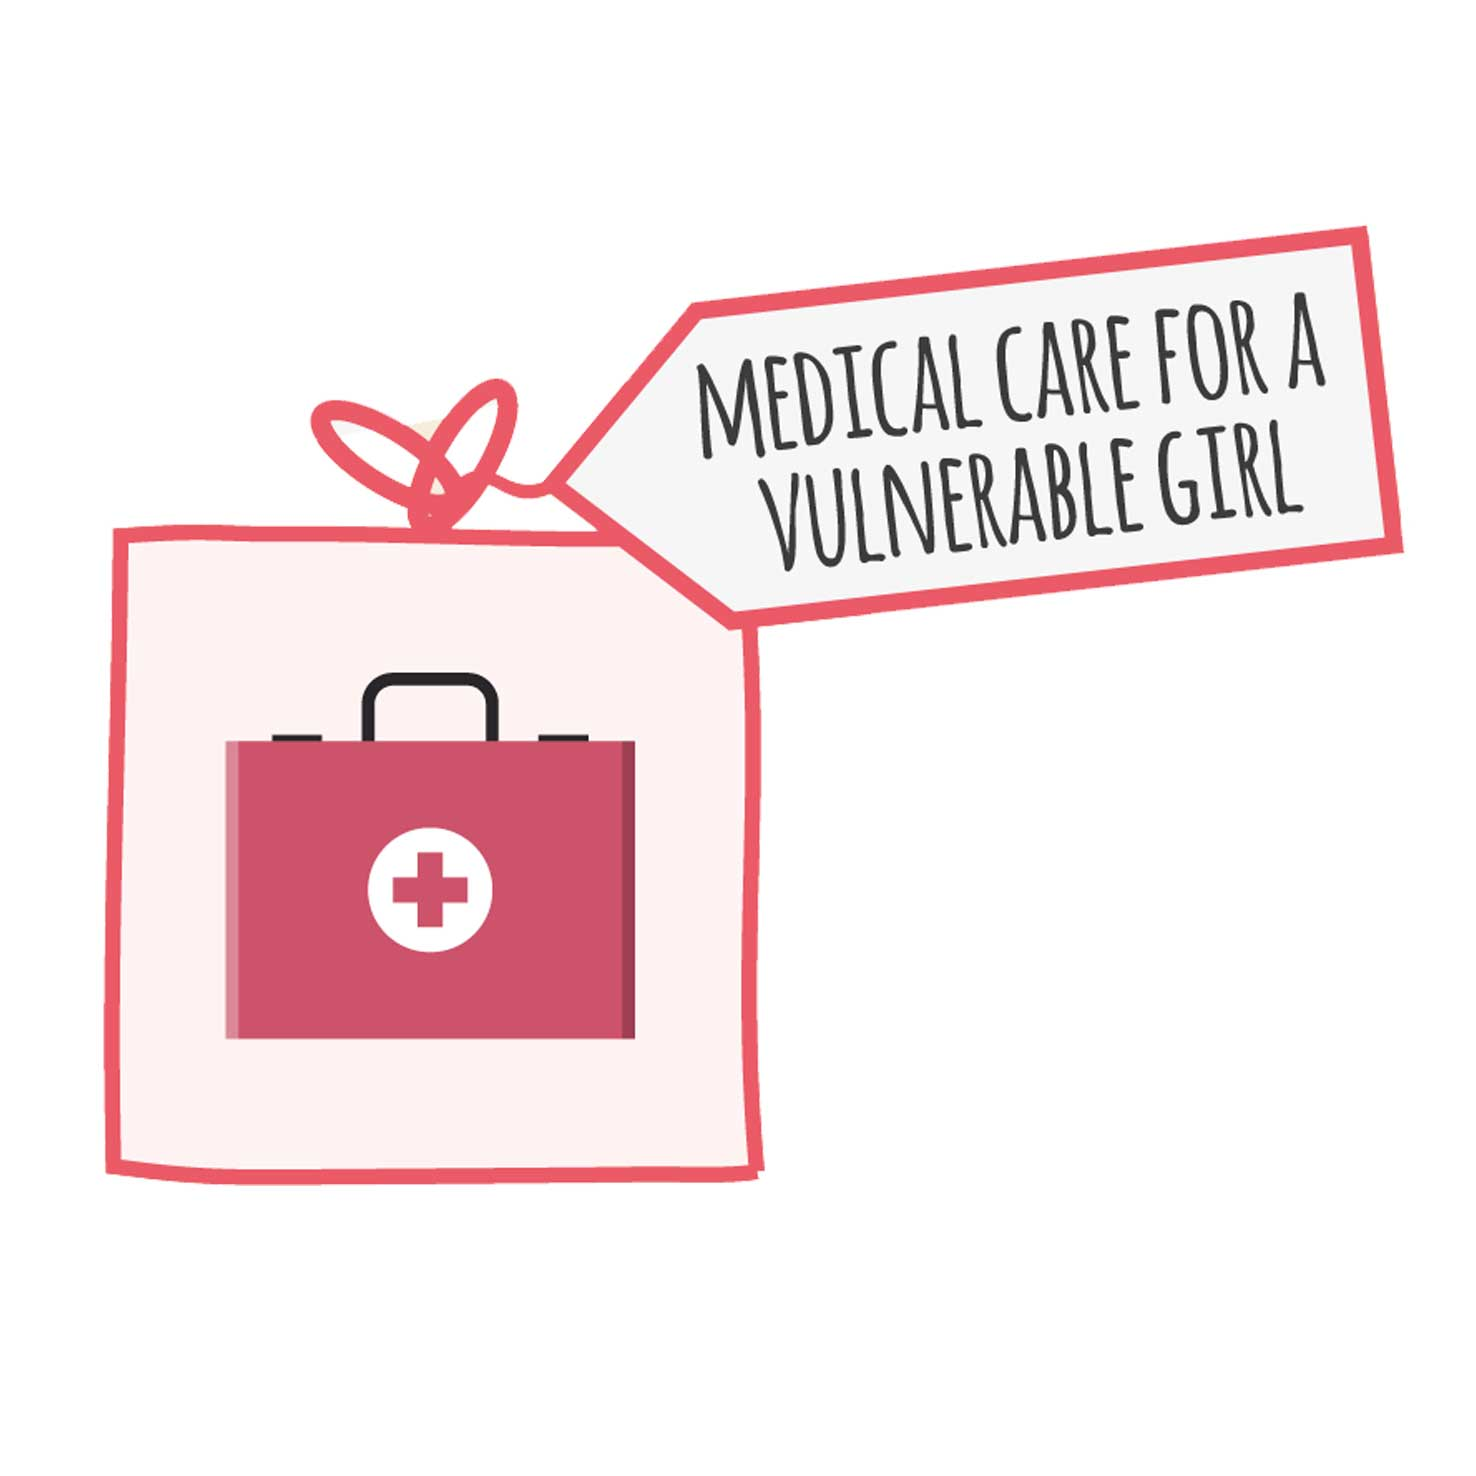 Medical Care for a Vulnerable Girl